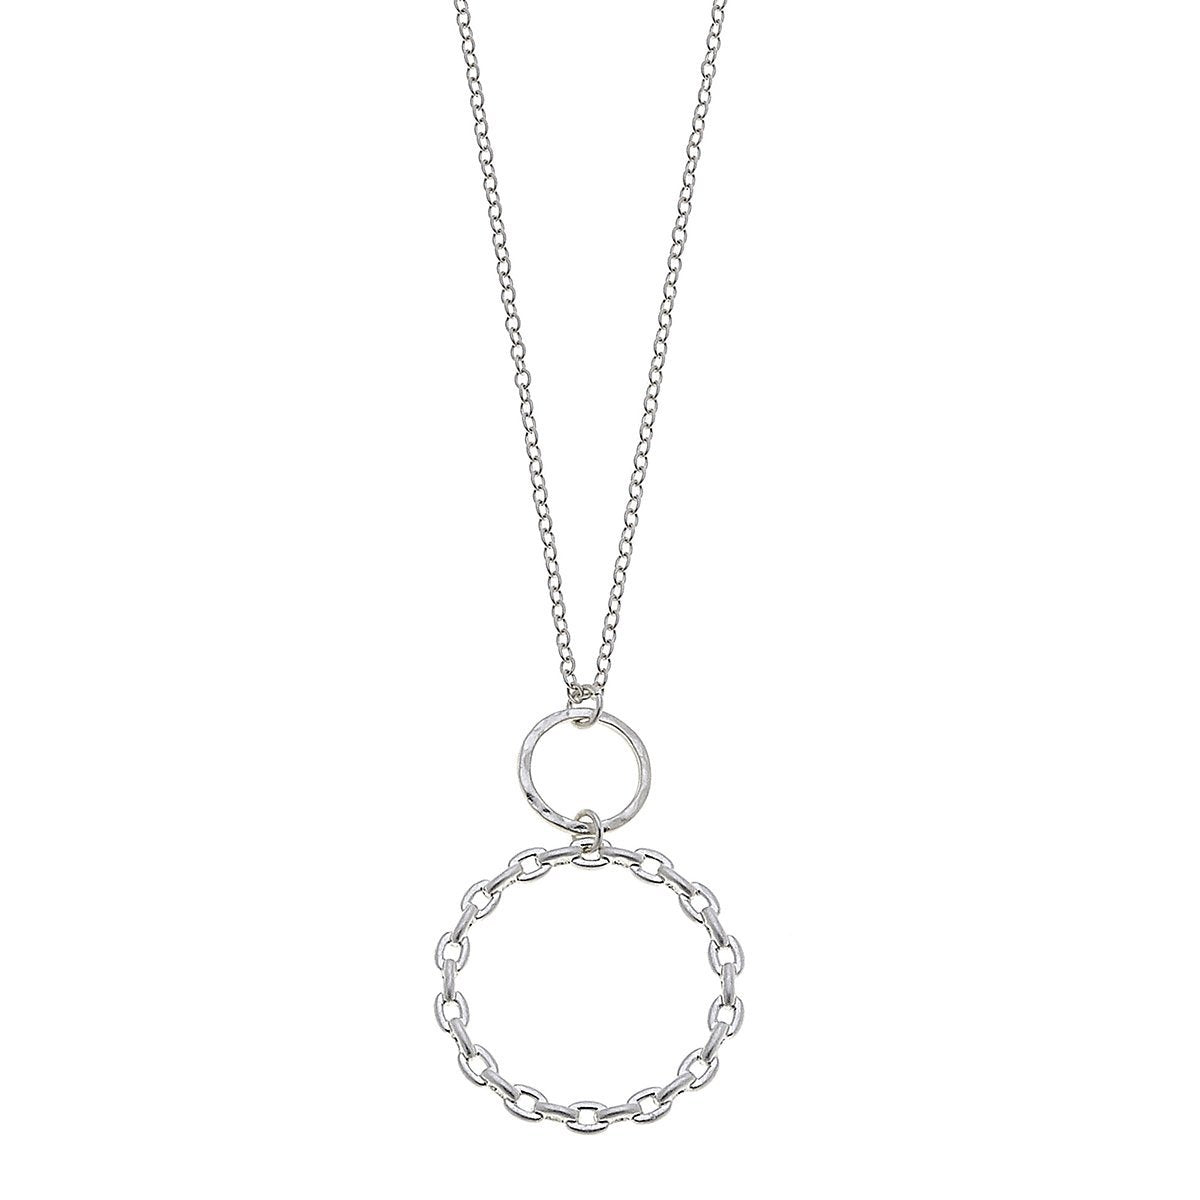 Allegra Pendant Necklace In Worn Silver